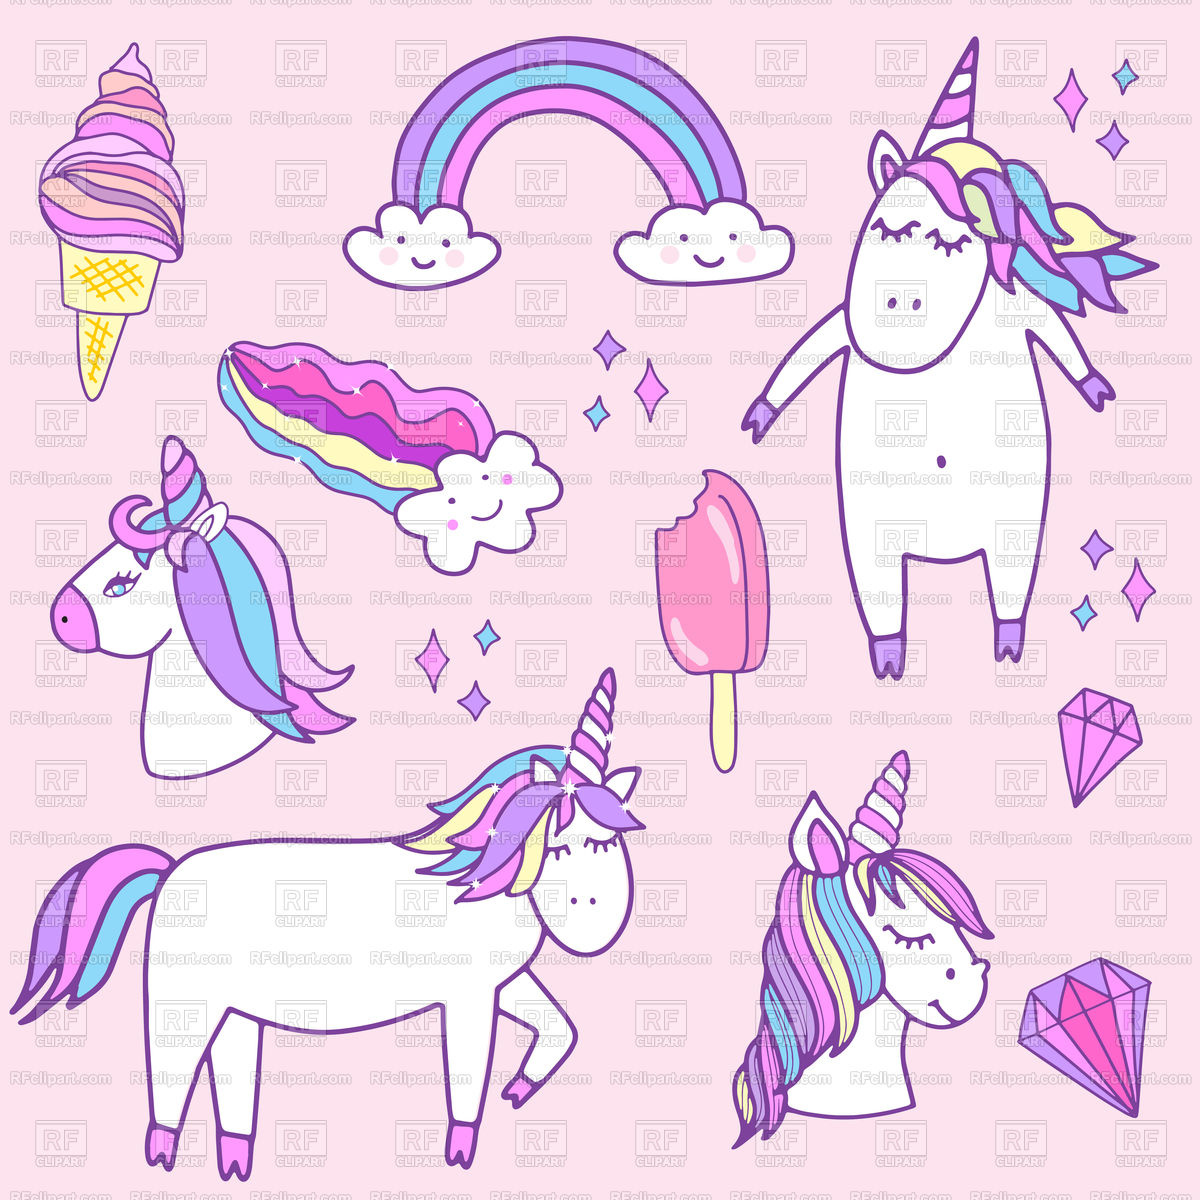 1200x1200 Fashion Patch Badges With Unicorns Vector Image Vector Artwork